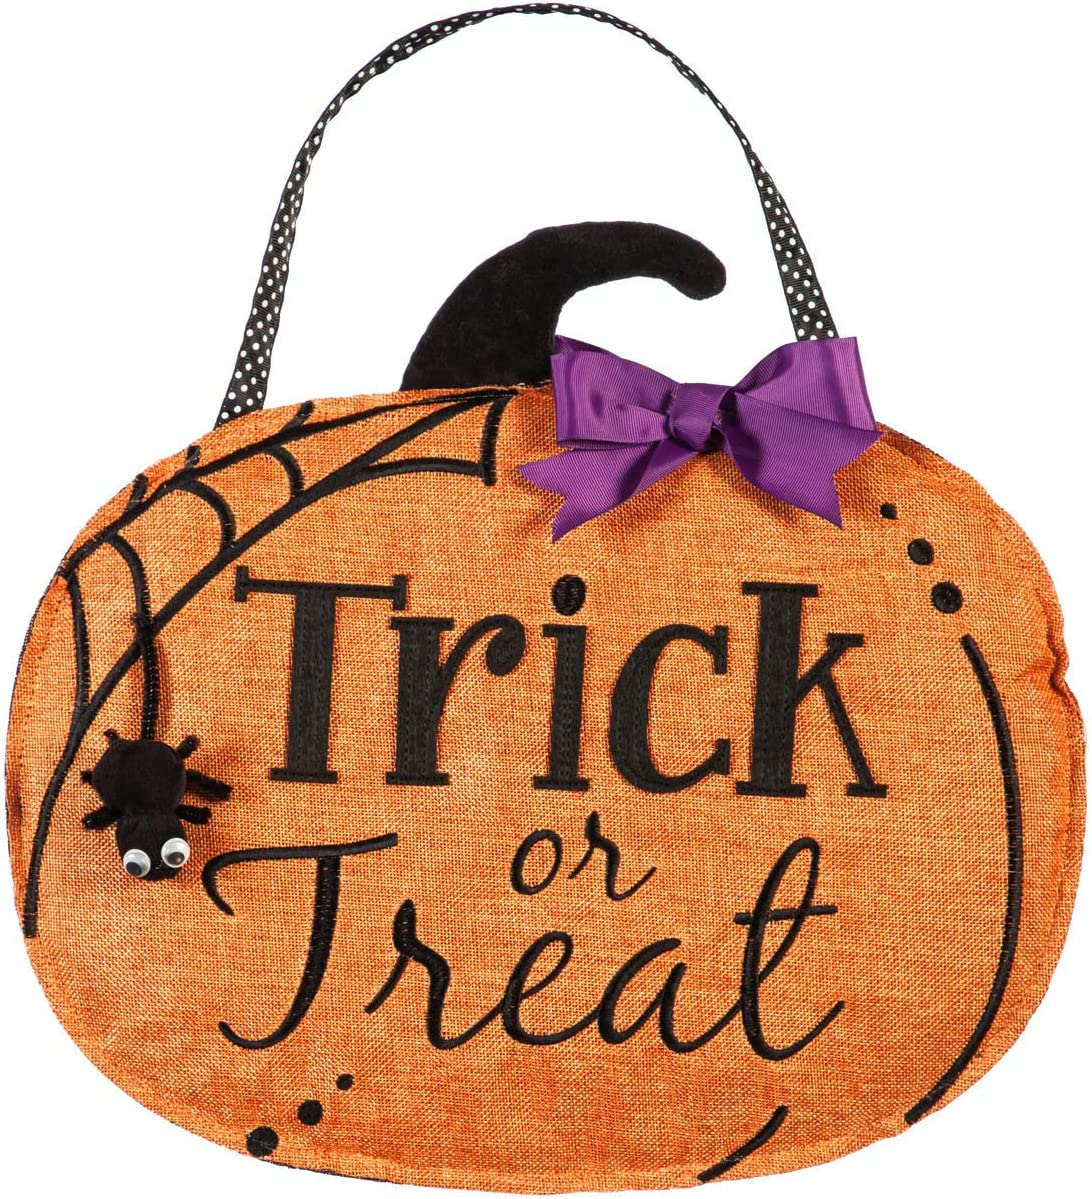 Evergreen Flag Beautiful Reversible Double Sided Trick Or Treat Hanging Door Décor - 18 x 1 x 16 Inches Fade and Weather Resistant Outdoor Decoration for Homes, Yards and Gardens